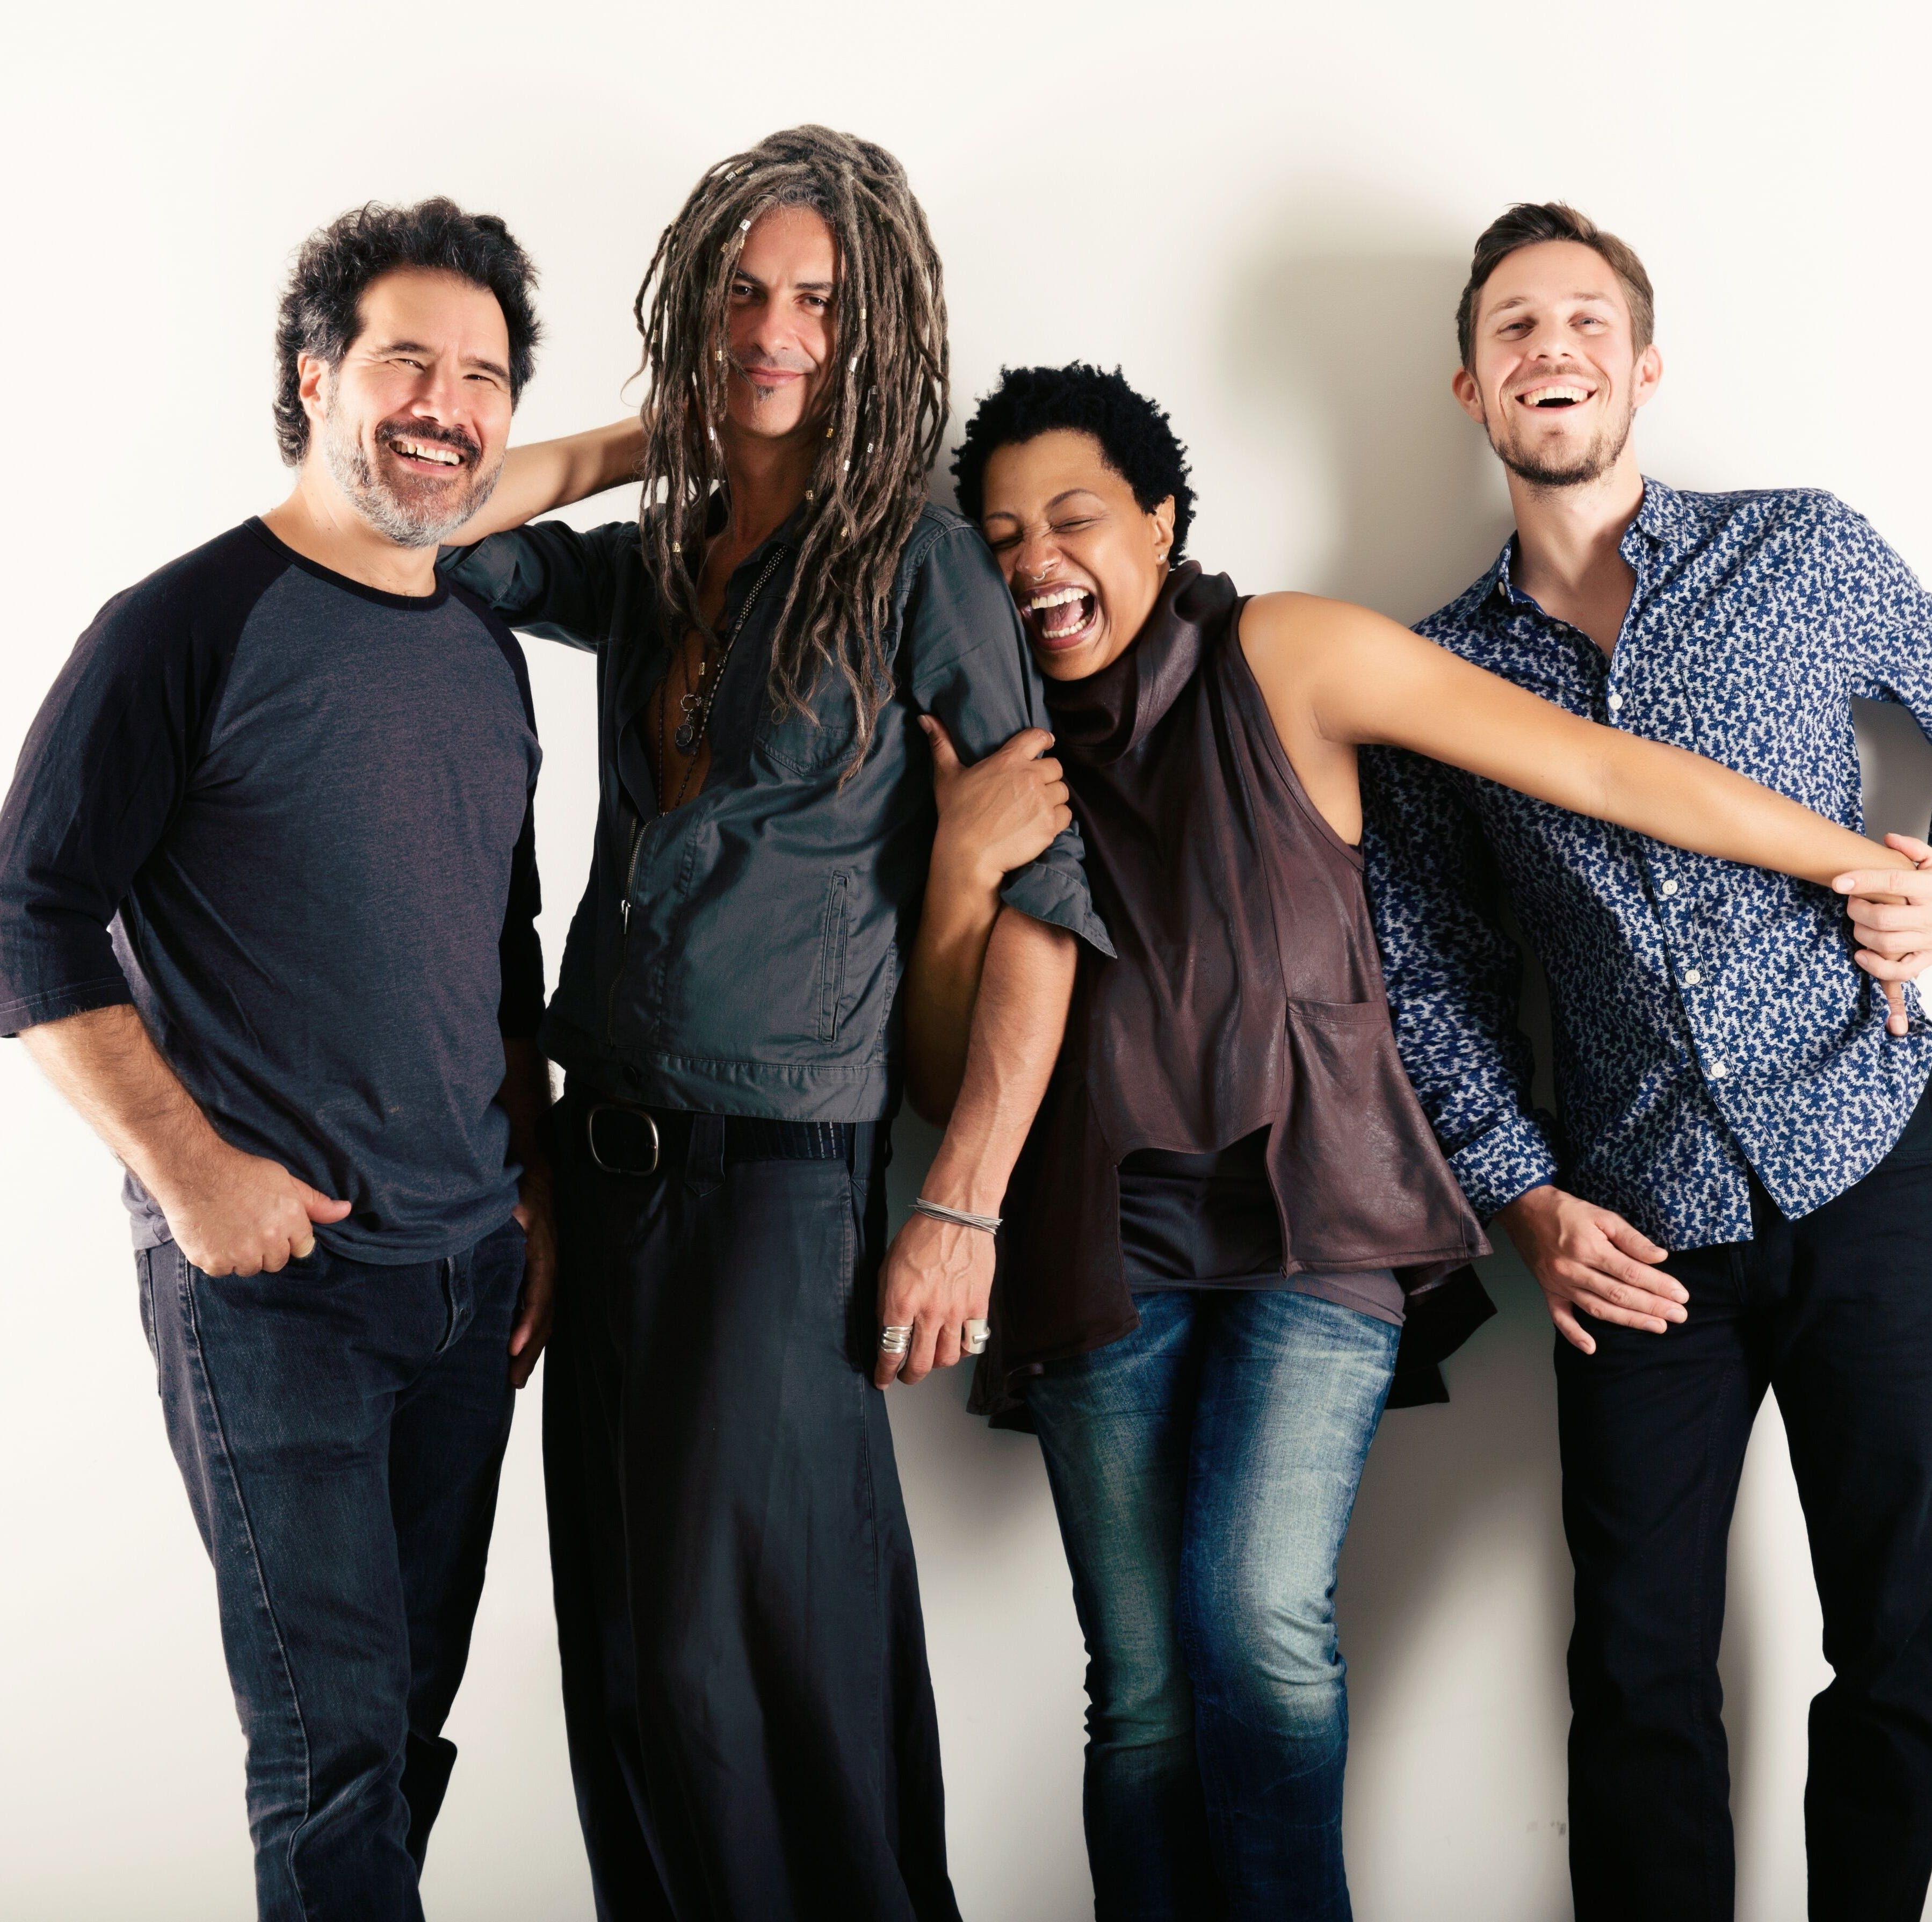 Opinion: About that Cincinnati Pops show - a public apology to Lisa Fischer